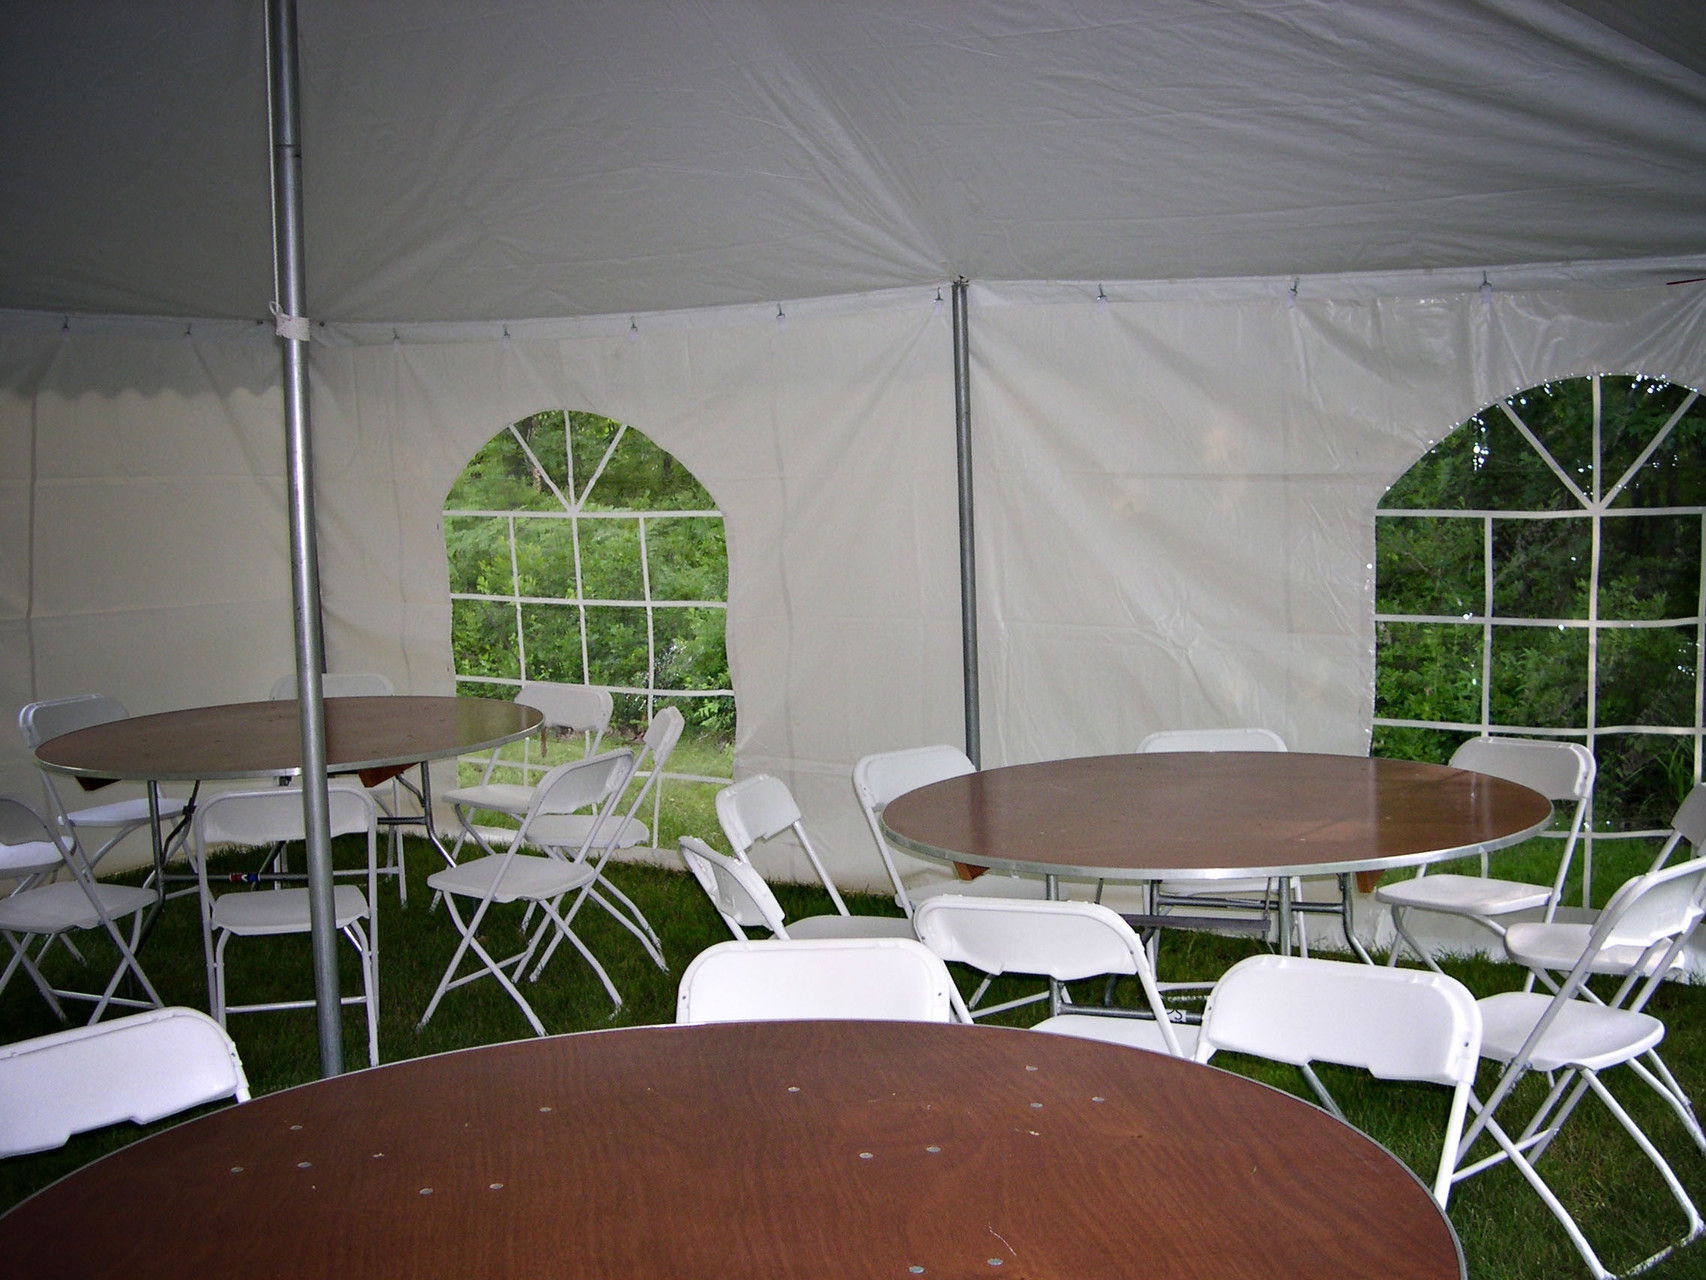 We also have round tables which seat up to 8